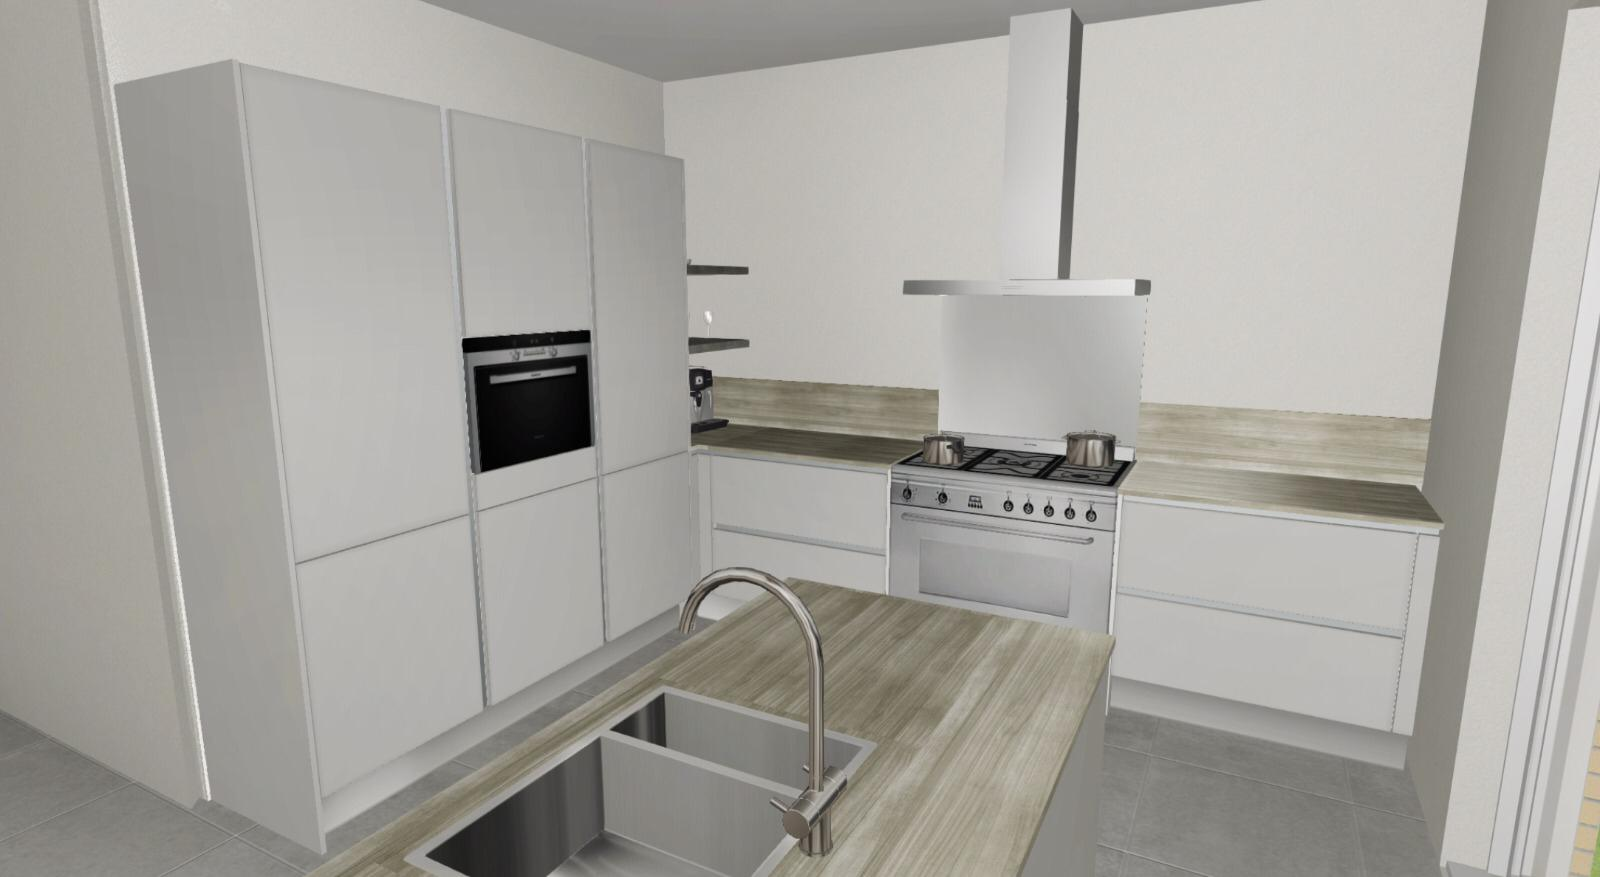 Keukenontwerp Hello Kitchen 2